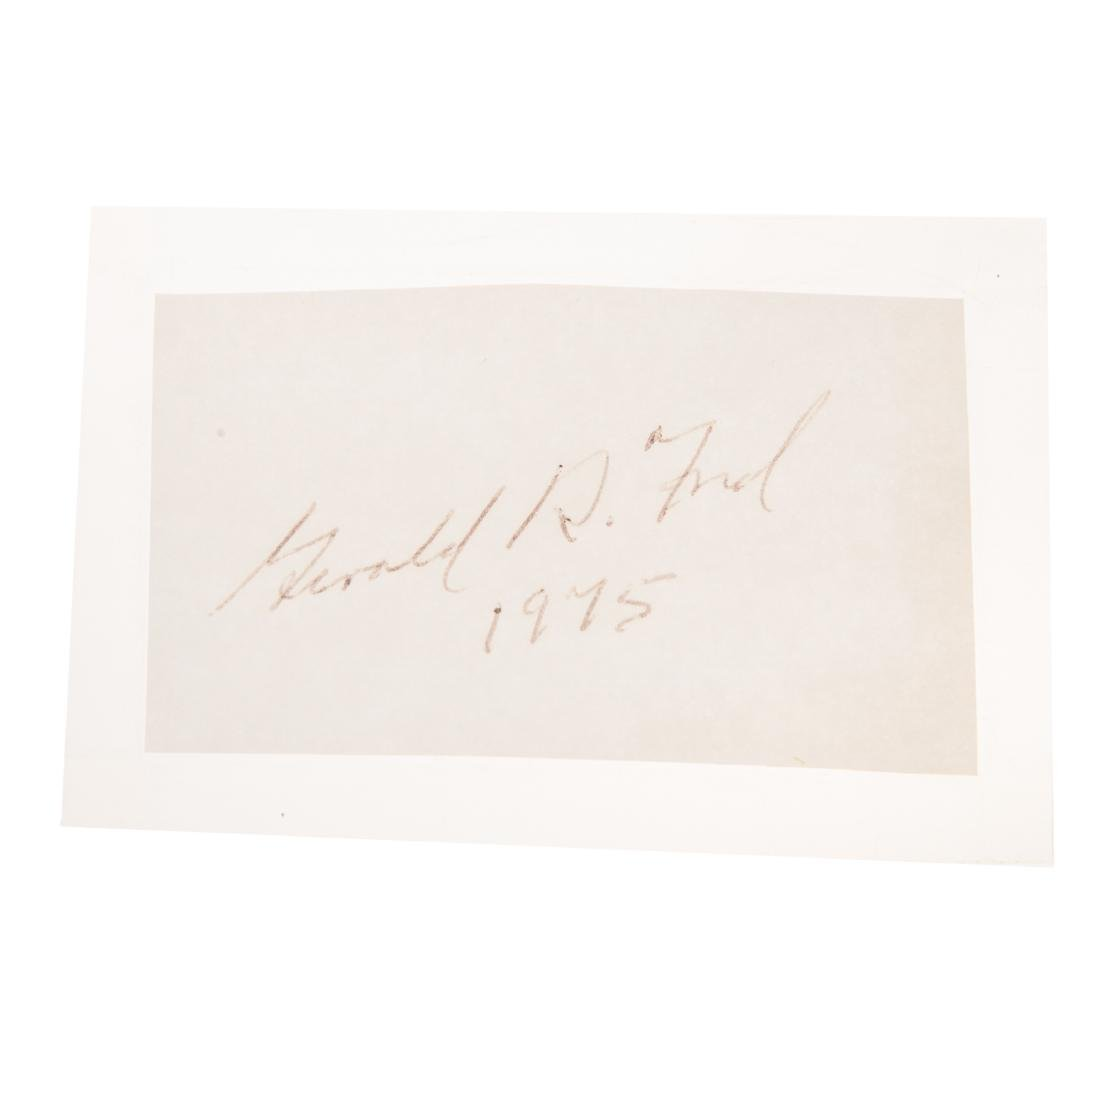 Eight former United States presidents signatures - 6